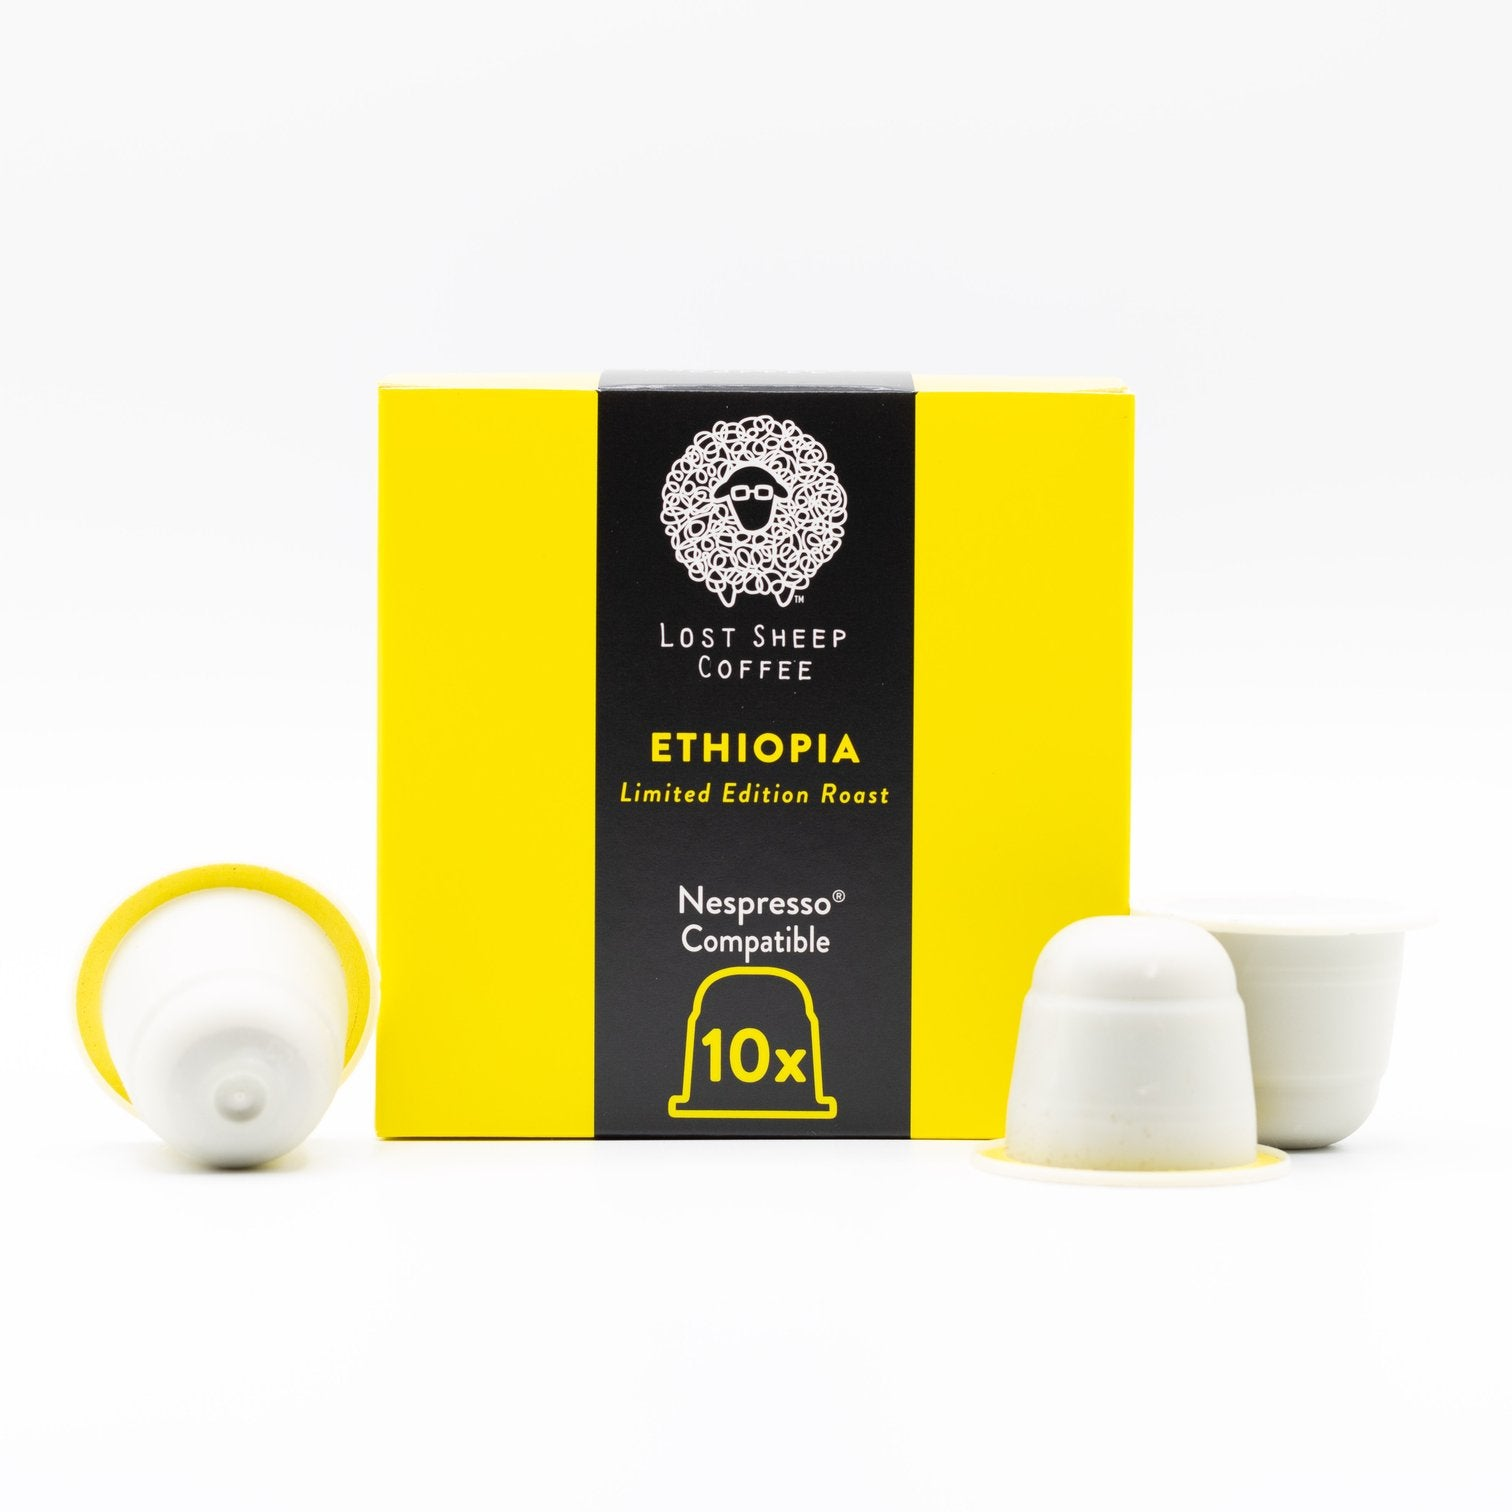 Ethiopia -LIMITED EDITION| Compostable | Nespresso© Capsules Available to pre-order, delivery middle of November - natoorio